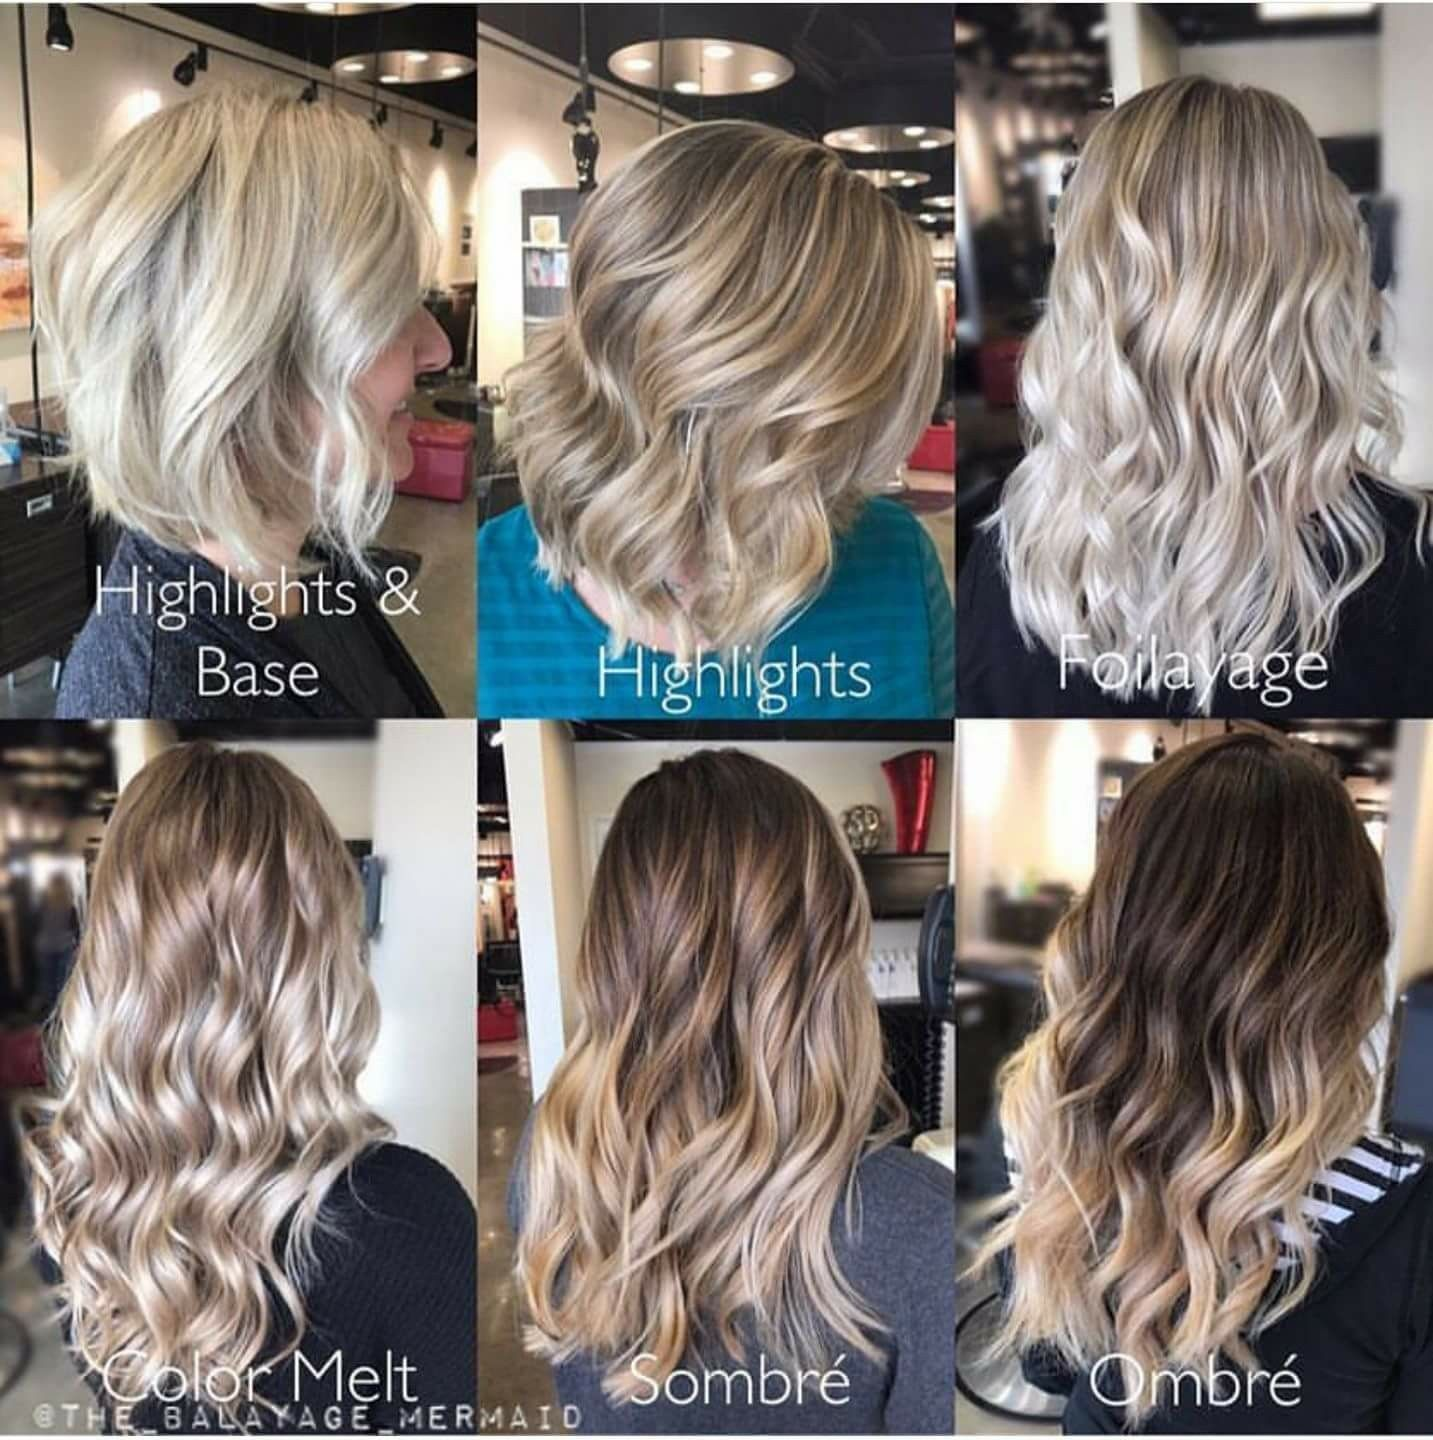 Different Types Of Highlights And Ombre Hair Color Guide Hair Color Hair Styles